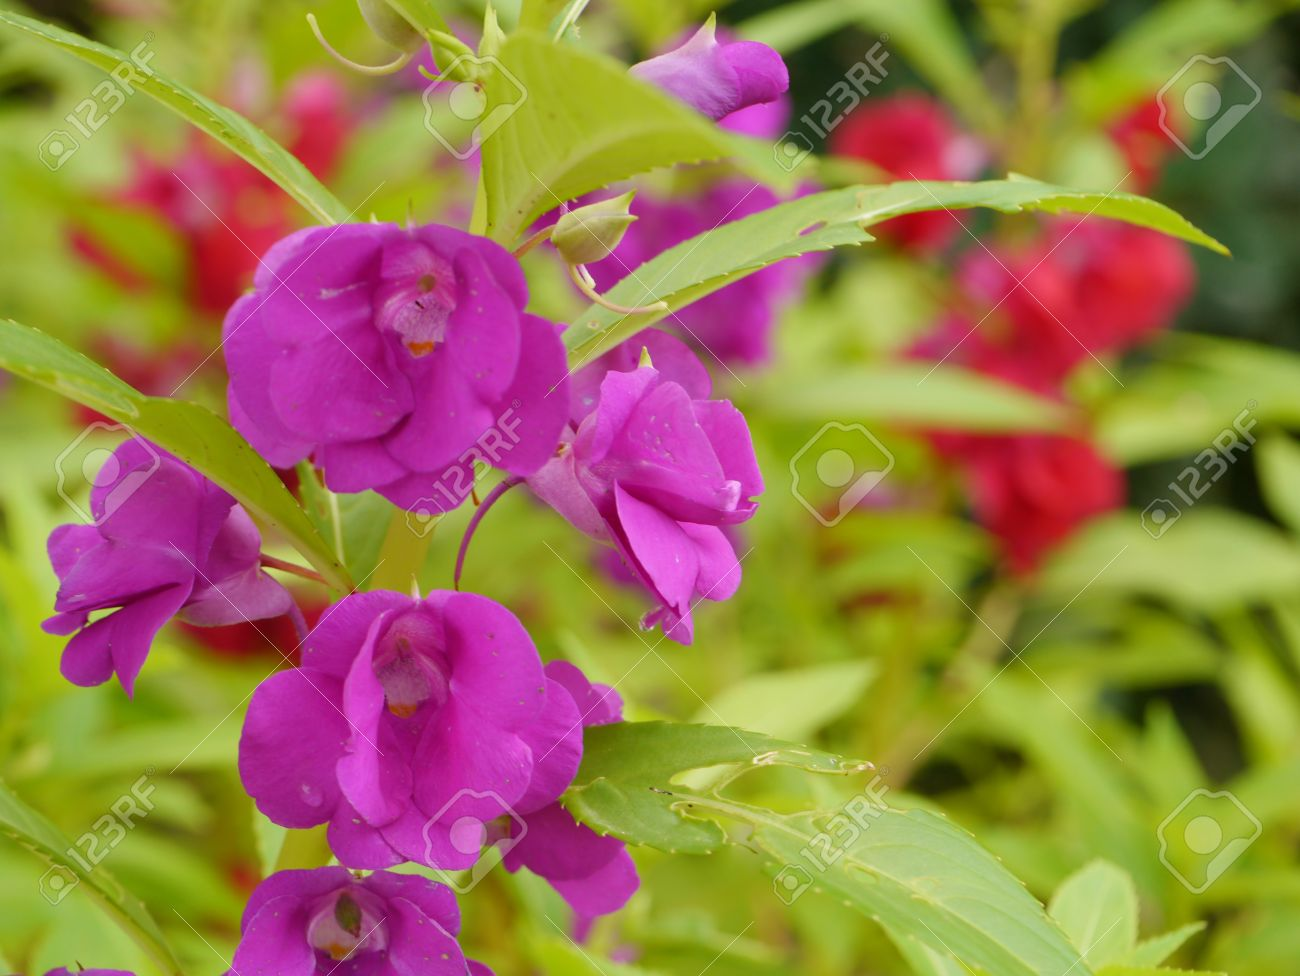 Violet flower of Impatiens balsamina. Stock Photo - 16327881